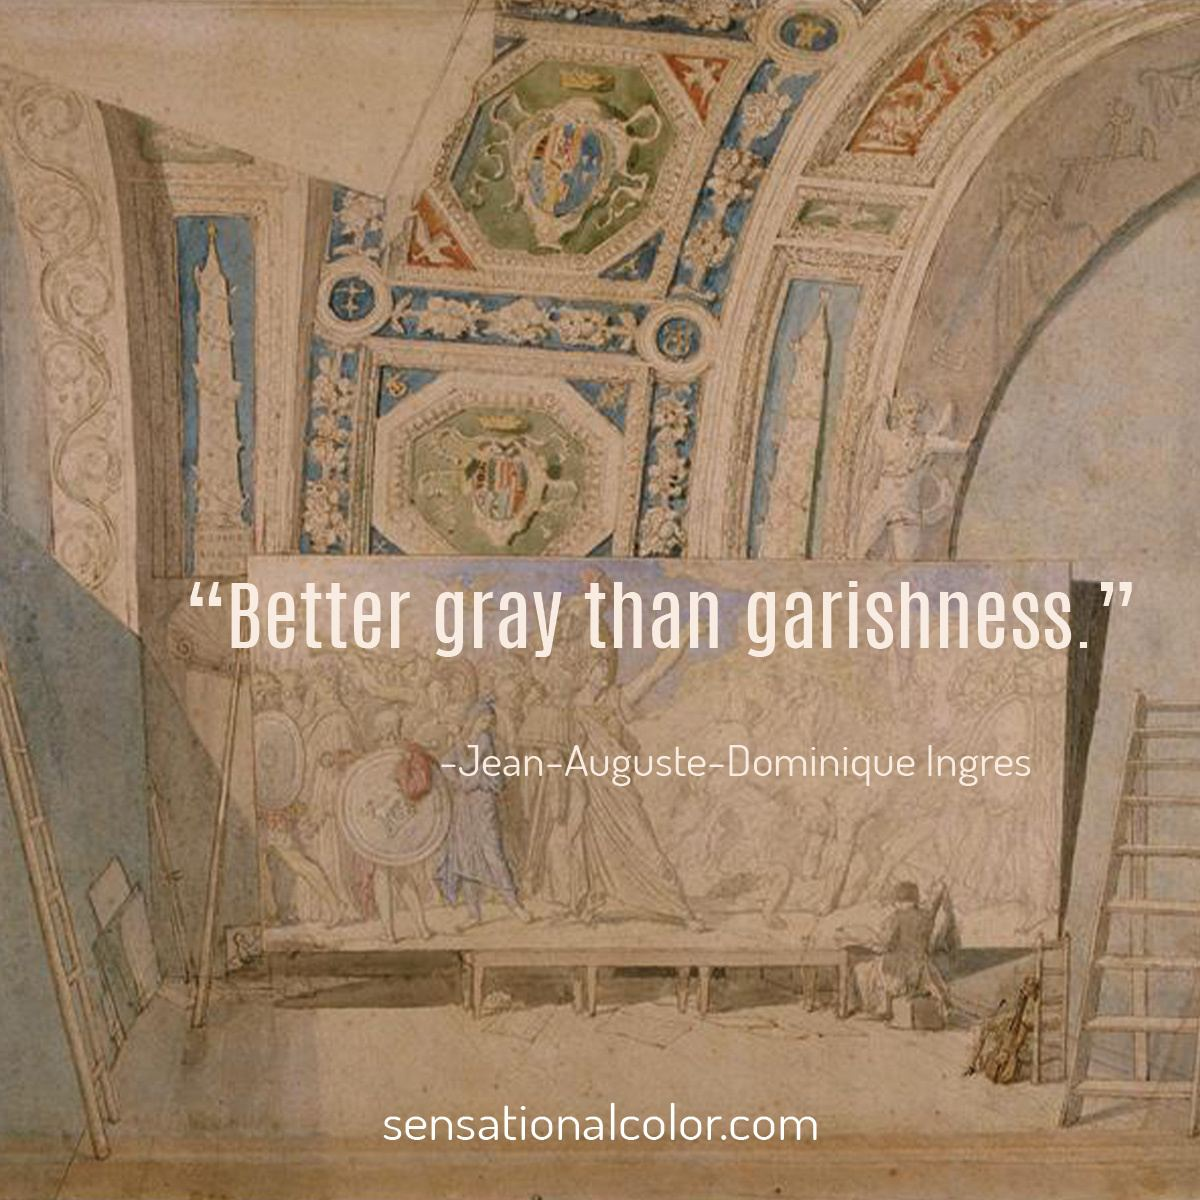 """Better gray than garishness."" - Jean-Auguste-Dominique Ingres"